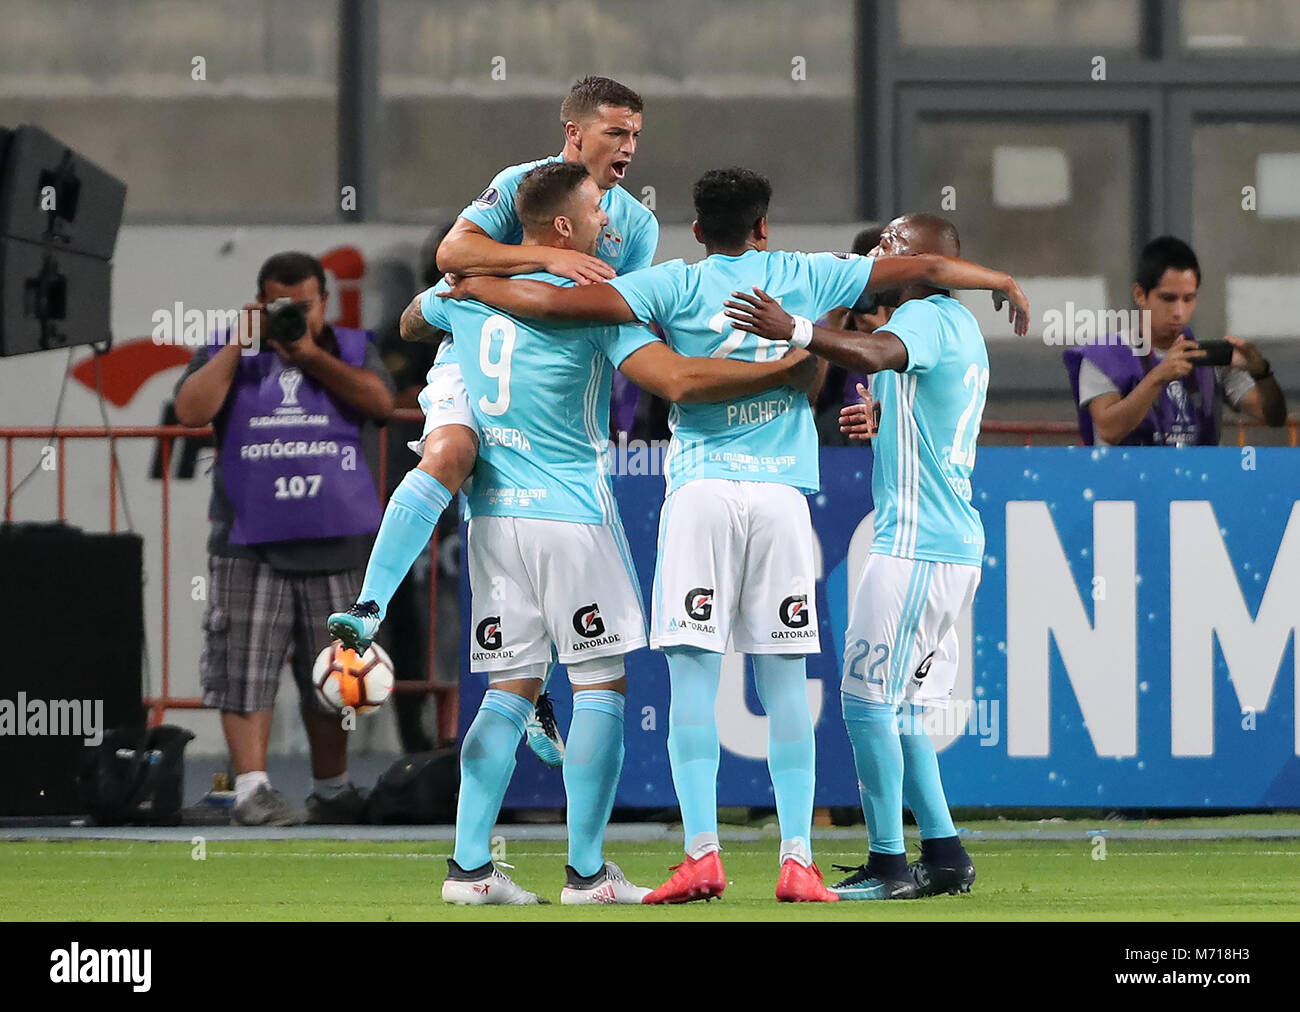 Sporting Cristal's players celebrate after scoring during the Copa Sudamericana soccer match between Sporting - Stock Image